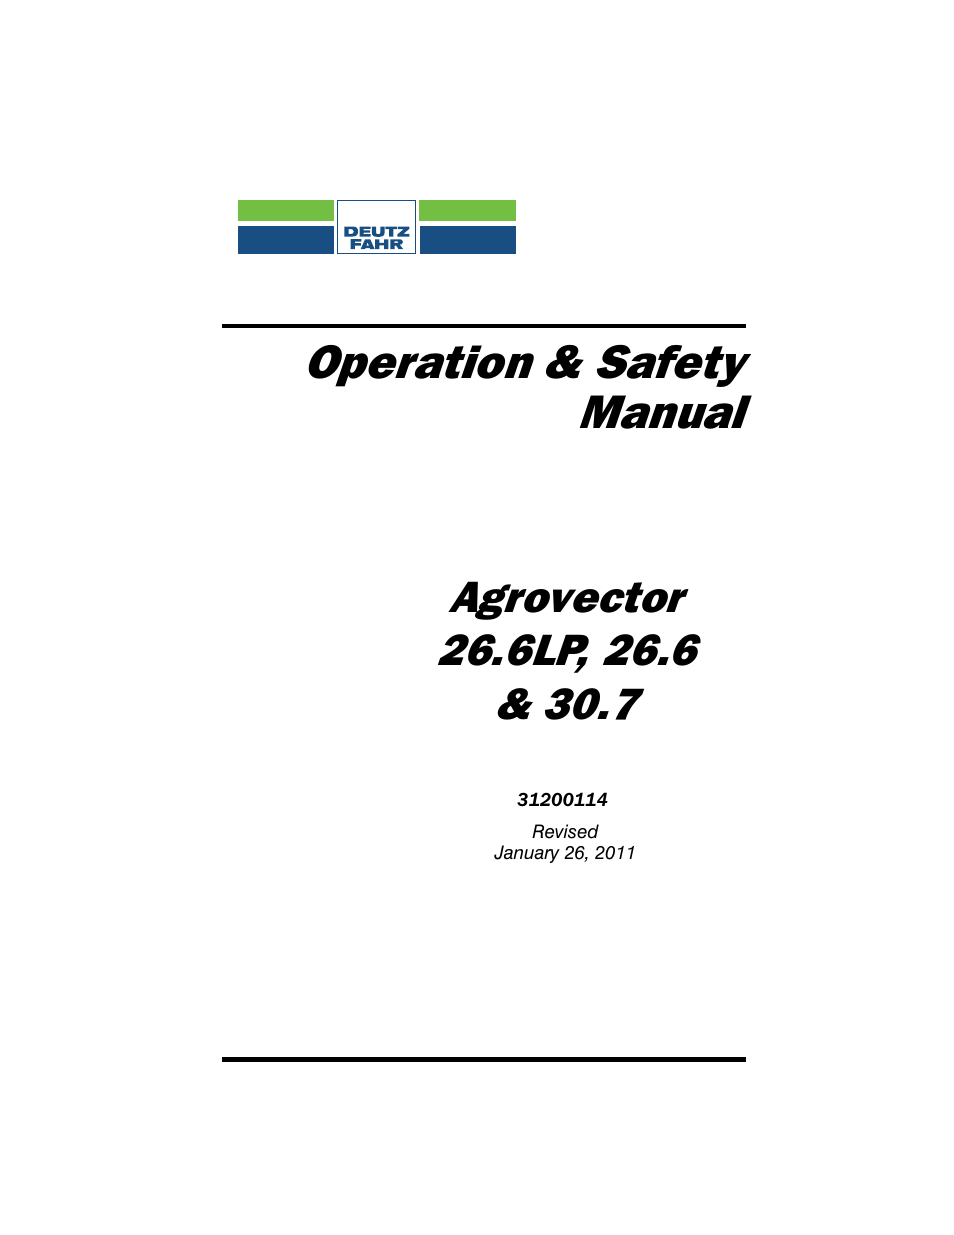 Deutz-Fahr Agrovector 30.7 User Manual | 138 pages | Also for: Agrovector  26.6, Agrovector 26.6LP